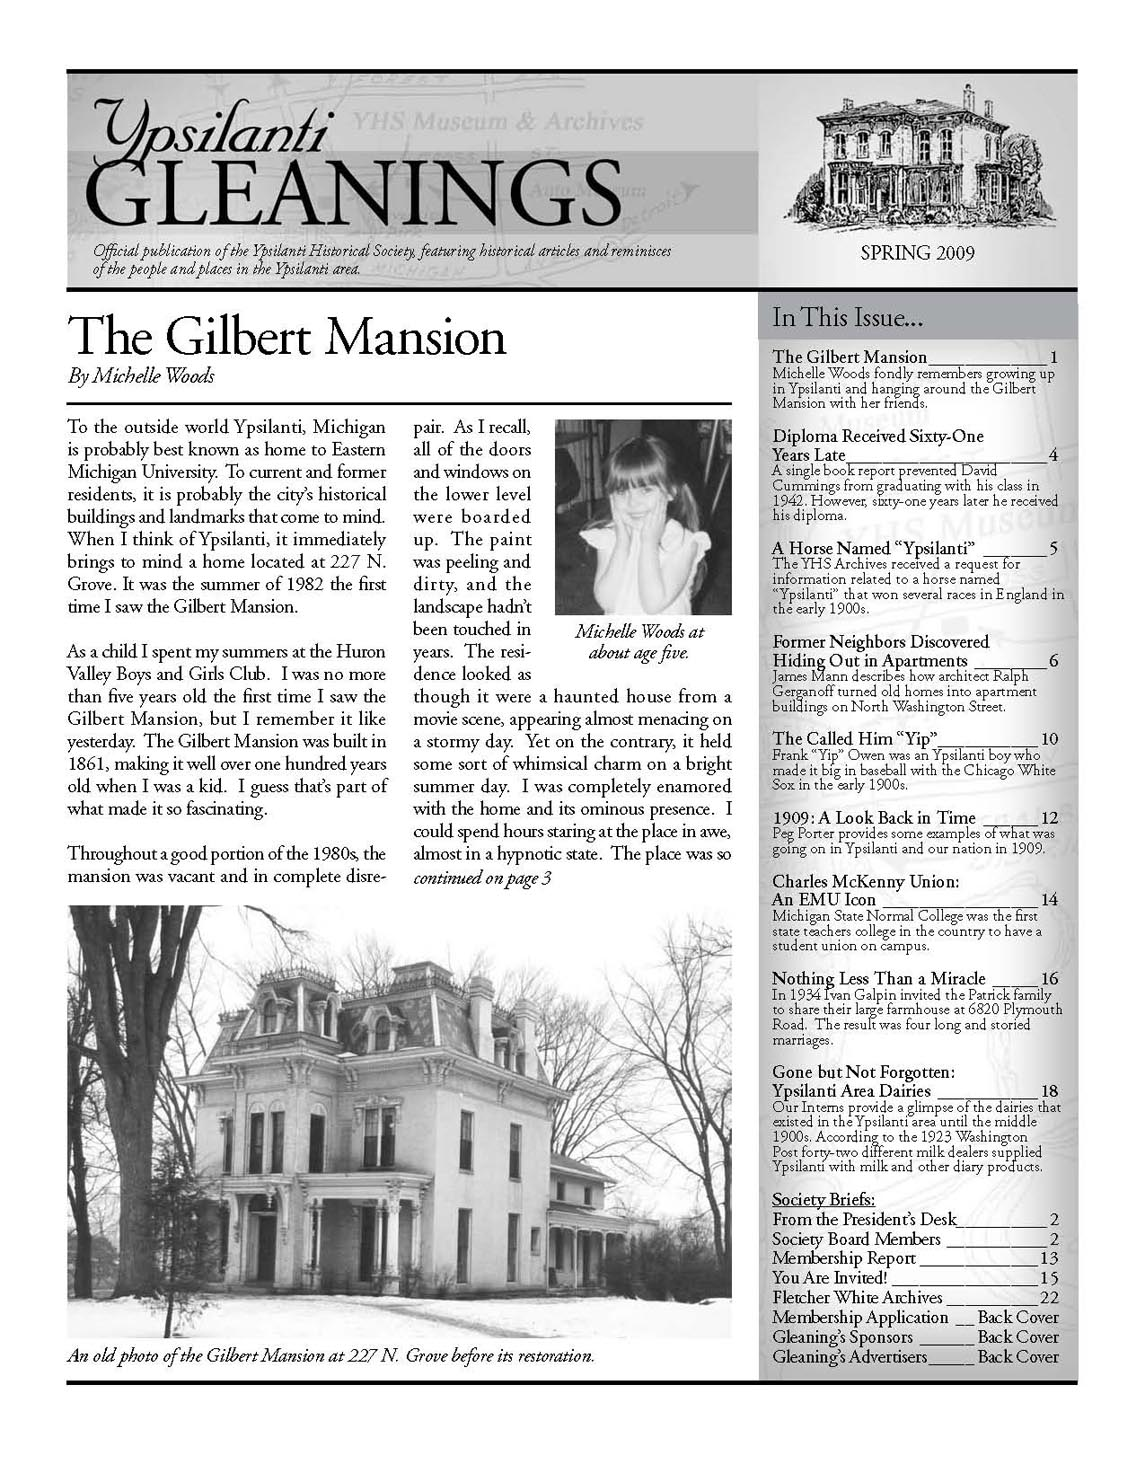 The Gilbert Mansion image